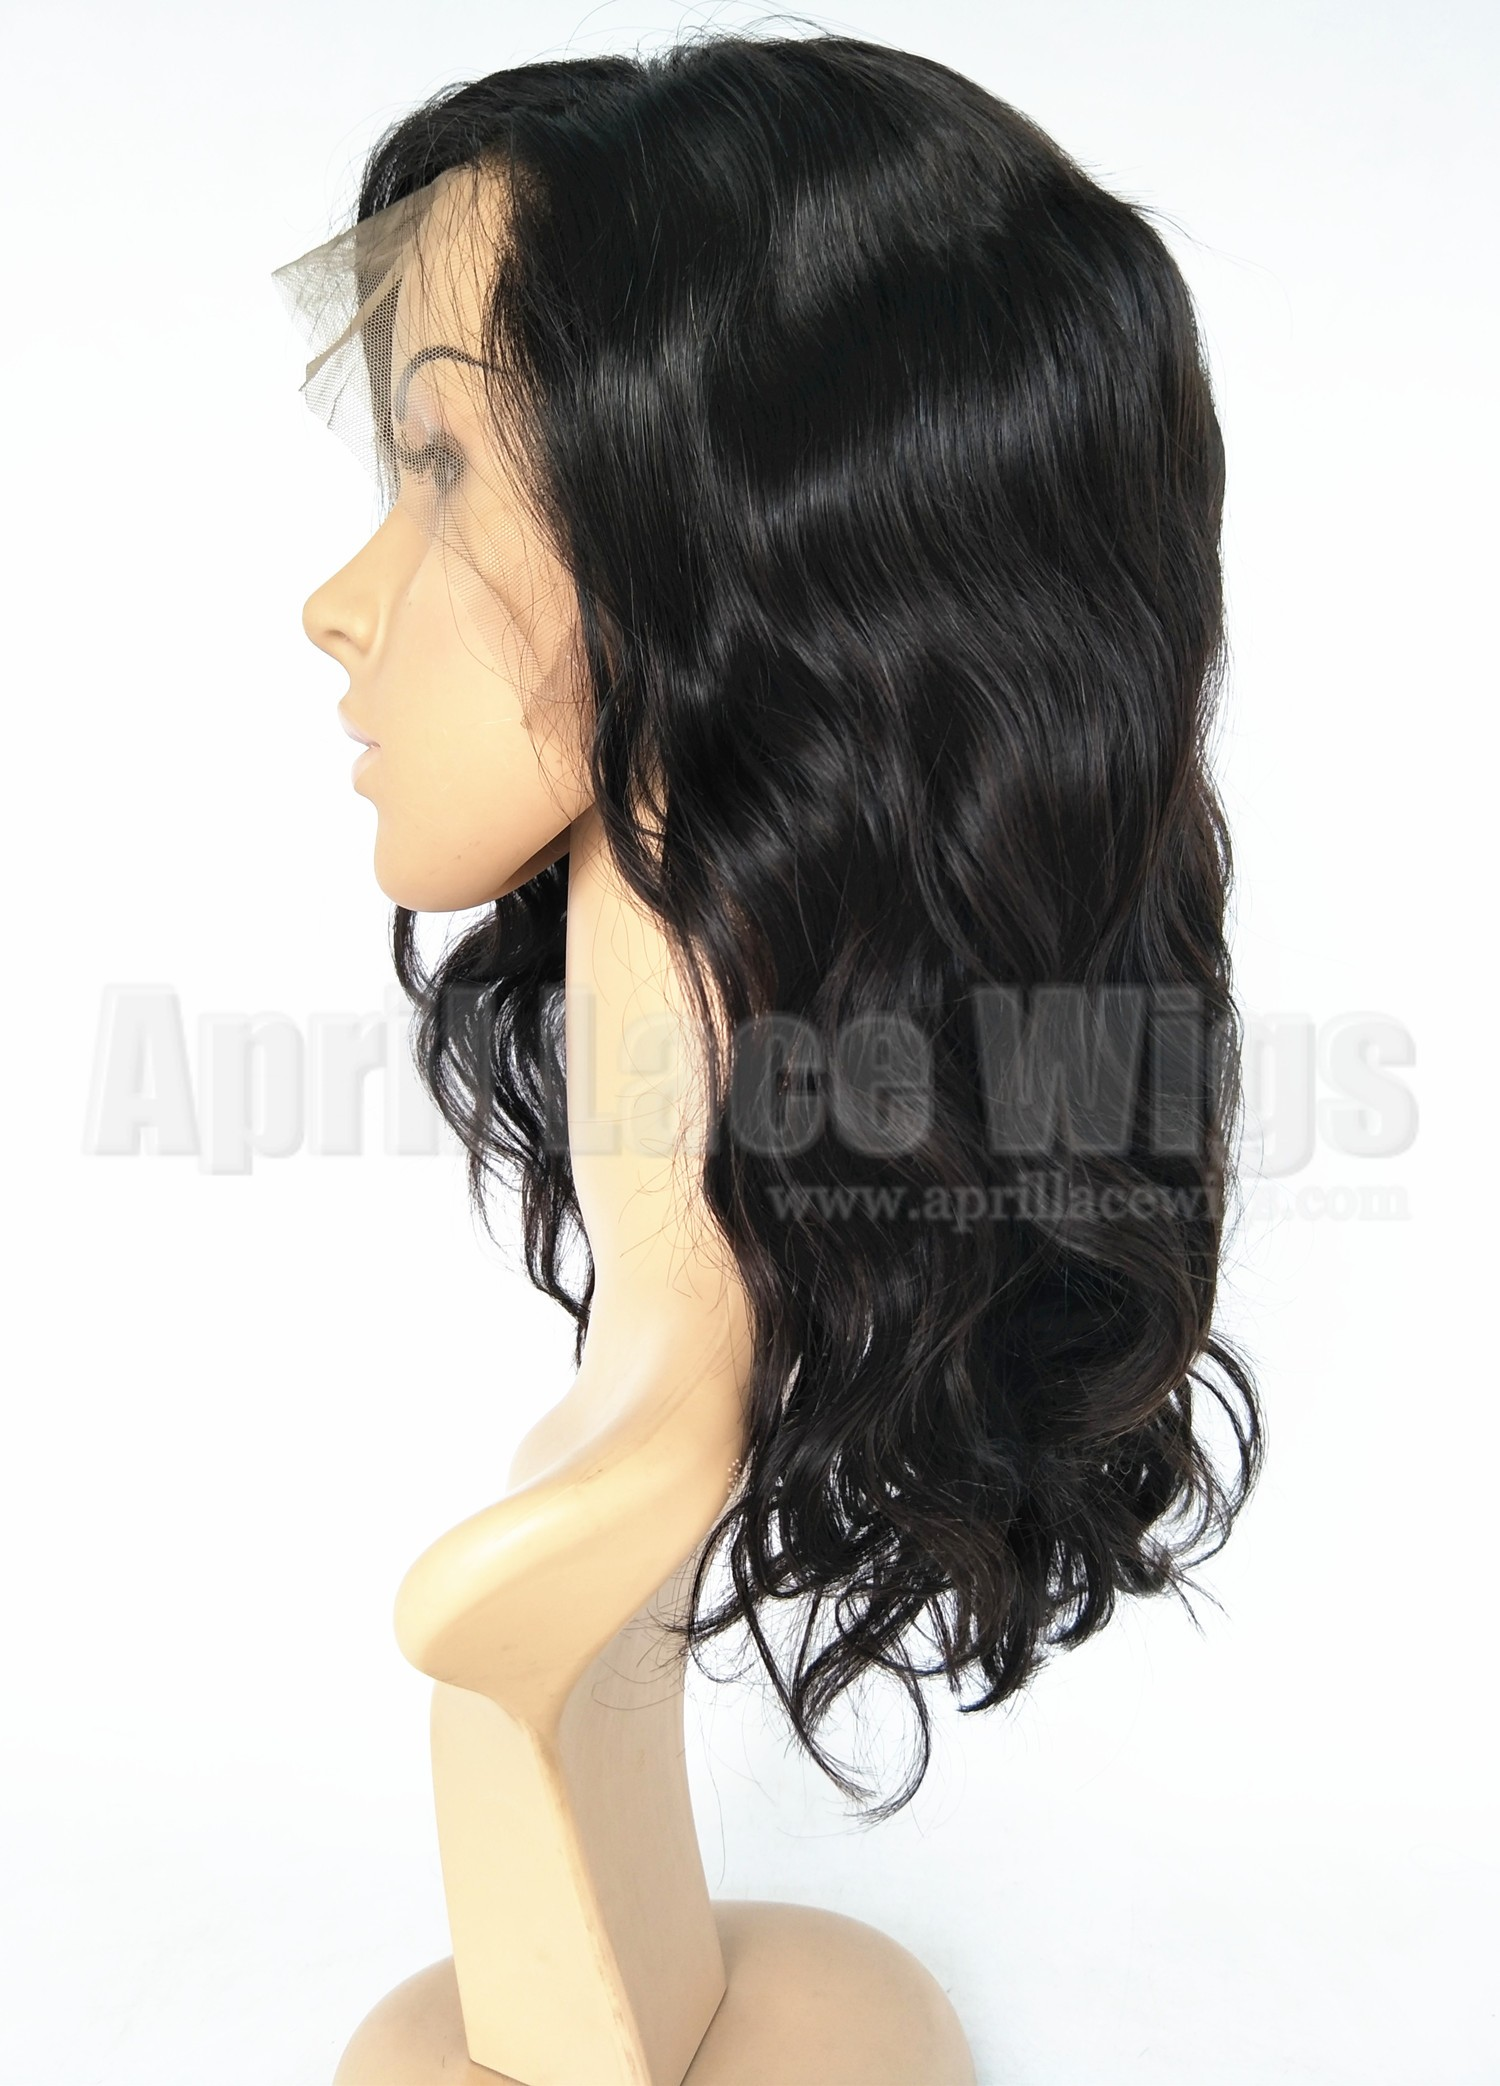 Brazilian virgin soft wavy 360 bob wig